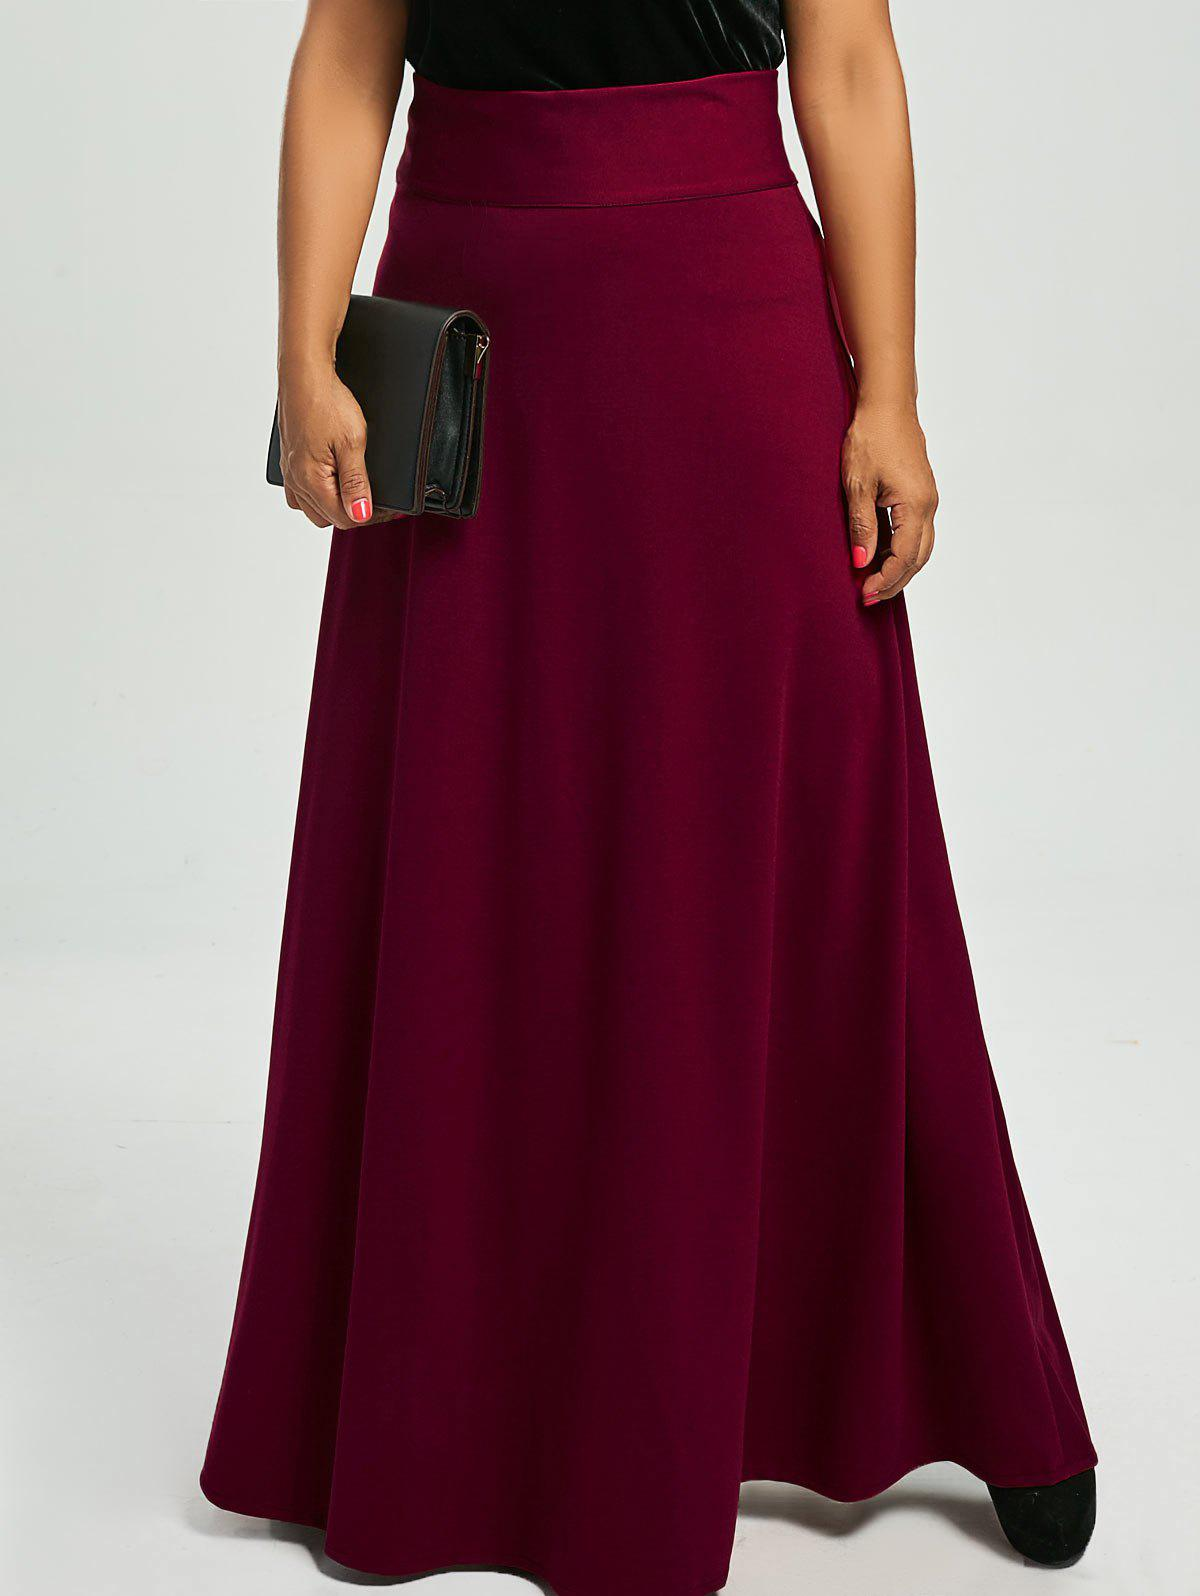 Plus Size High Waist Maxi Flare Skirts - WINE RED 5XL